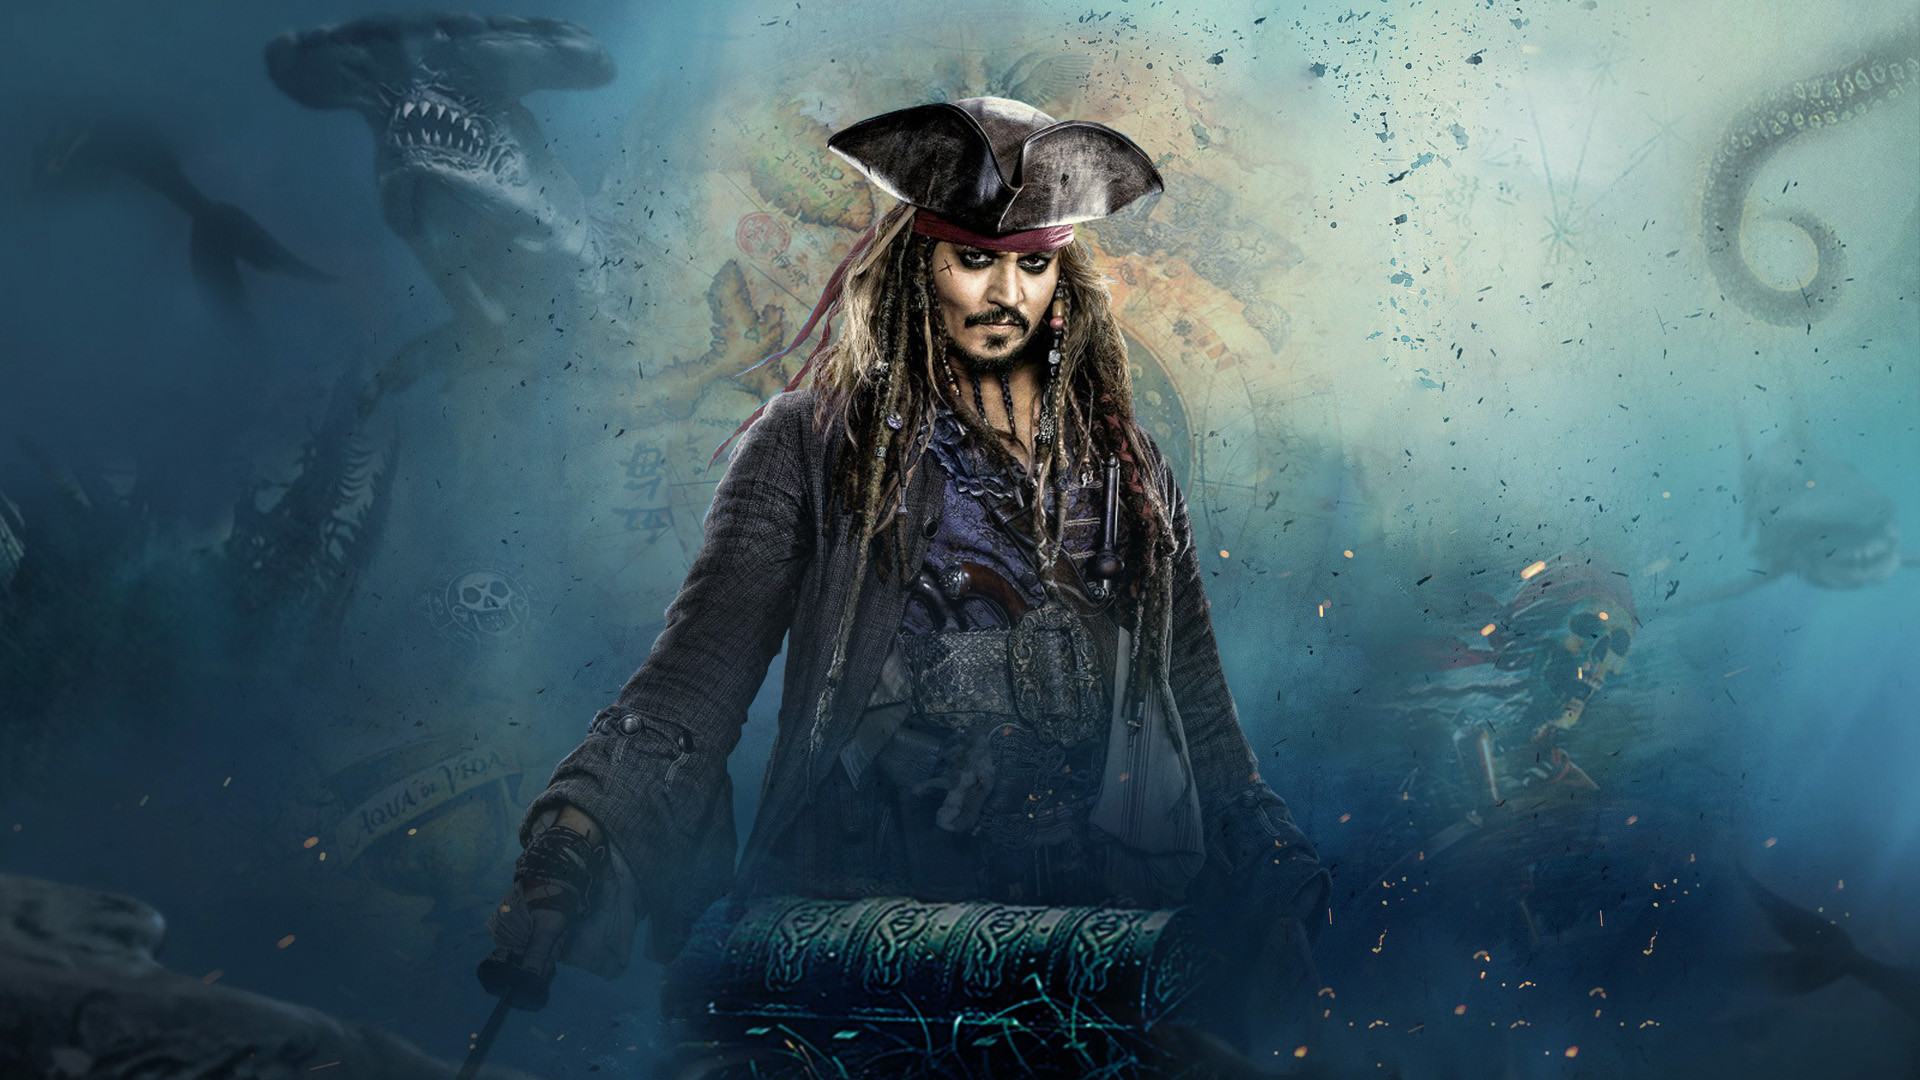 Pirates of the caribbean wallpapers 70 background pictures - Caribbean iphone wallpaper ...